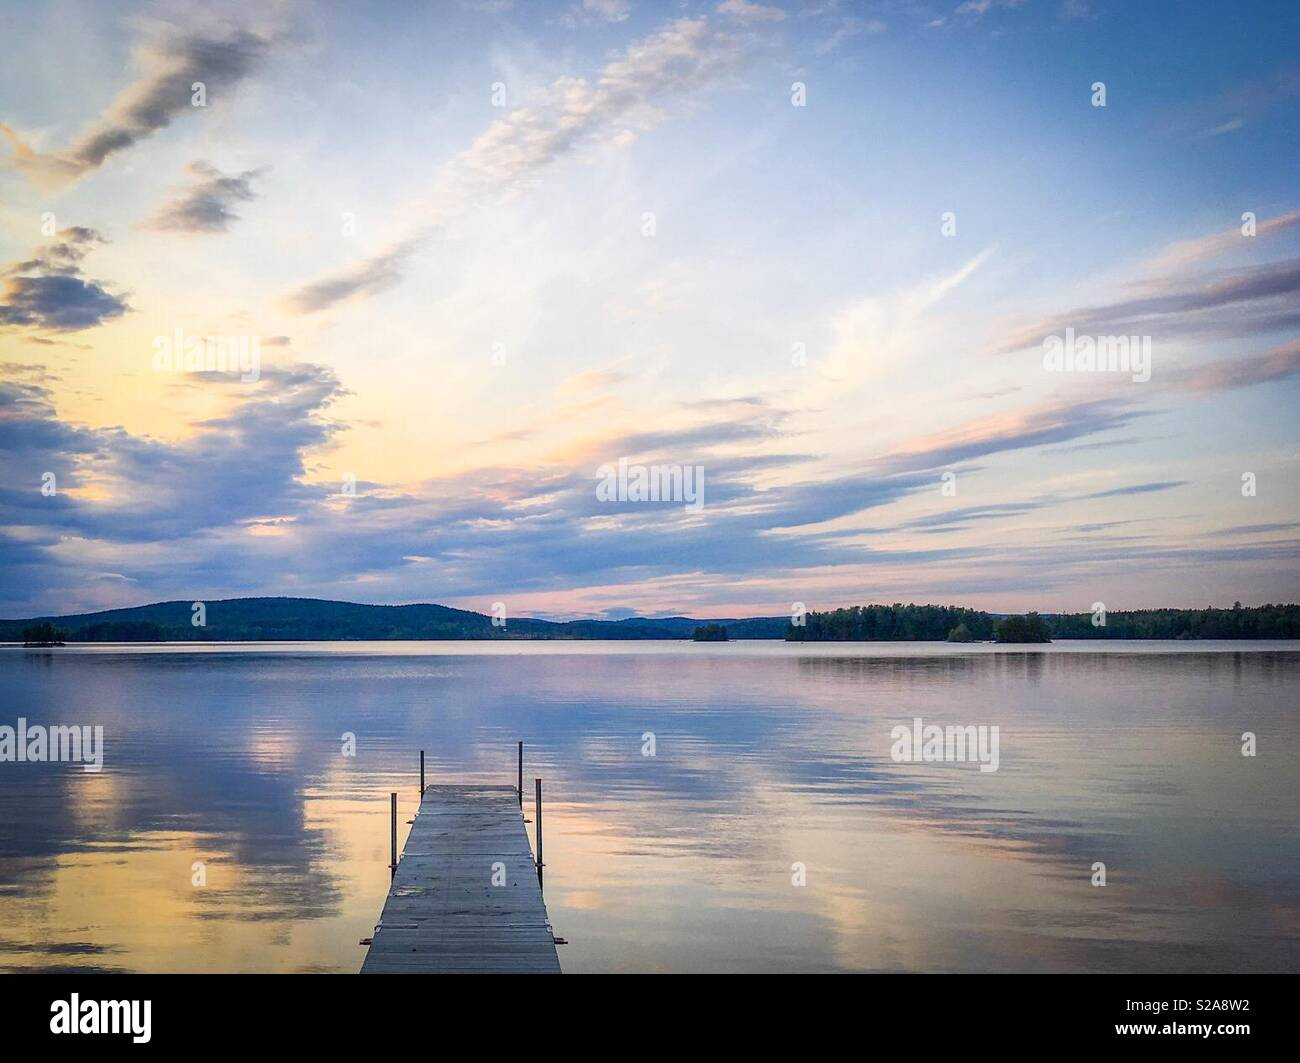 Summer evening by the lake in Dalarna, Sweden. - Stock Image